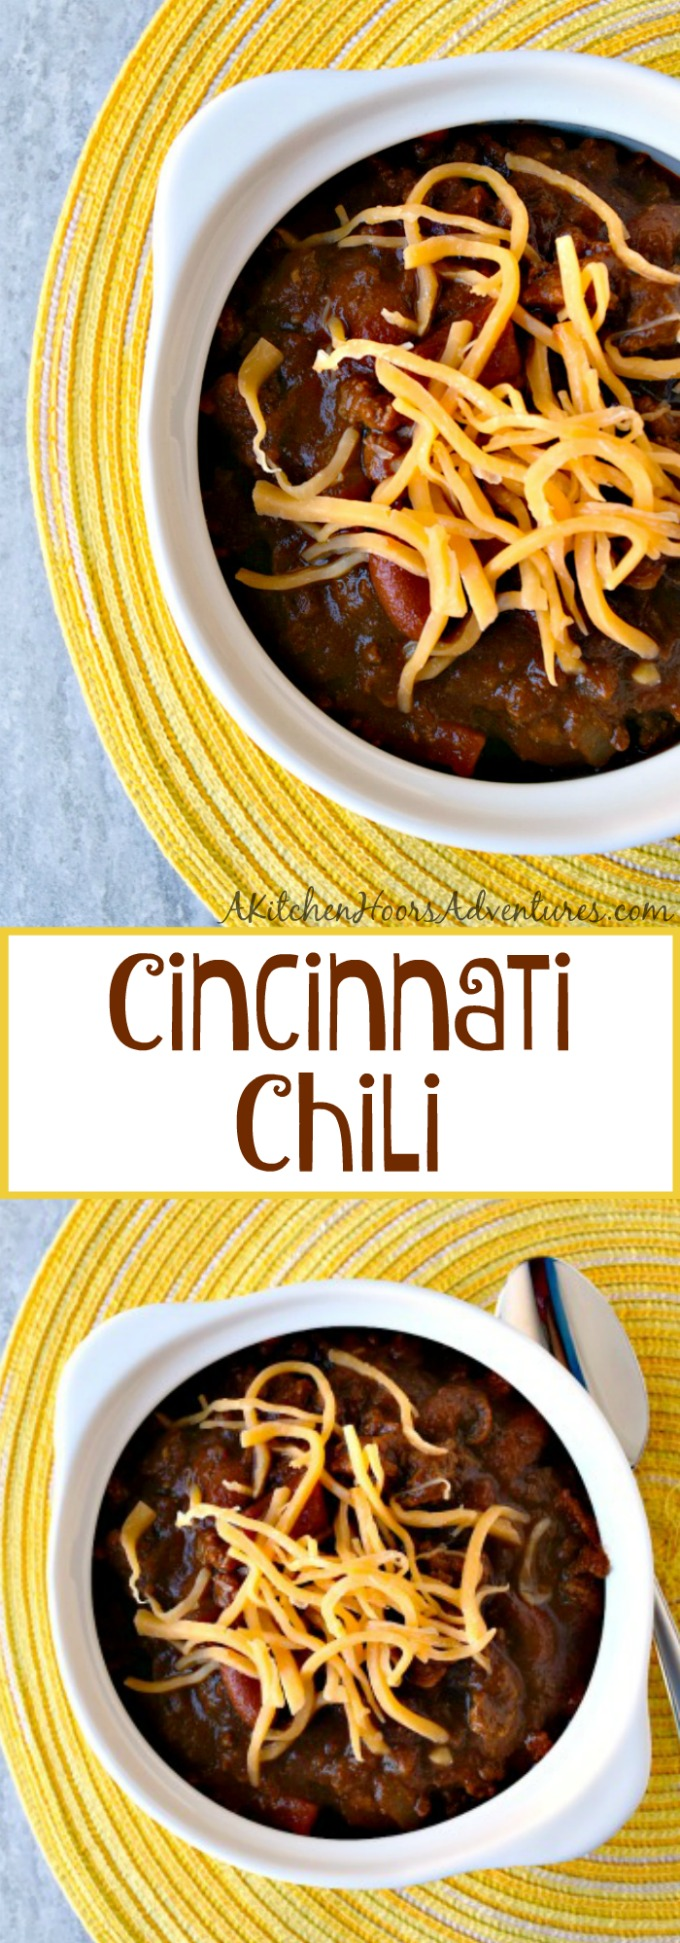 Cincinnati Chili is decidedly different and delicious.  This chili is a combination of Macedonia and Greek flavors mixed with conventional chili flavors in a delicious meat stew.